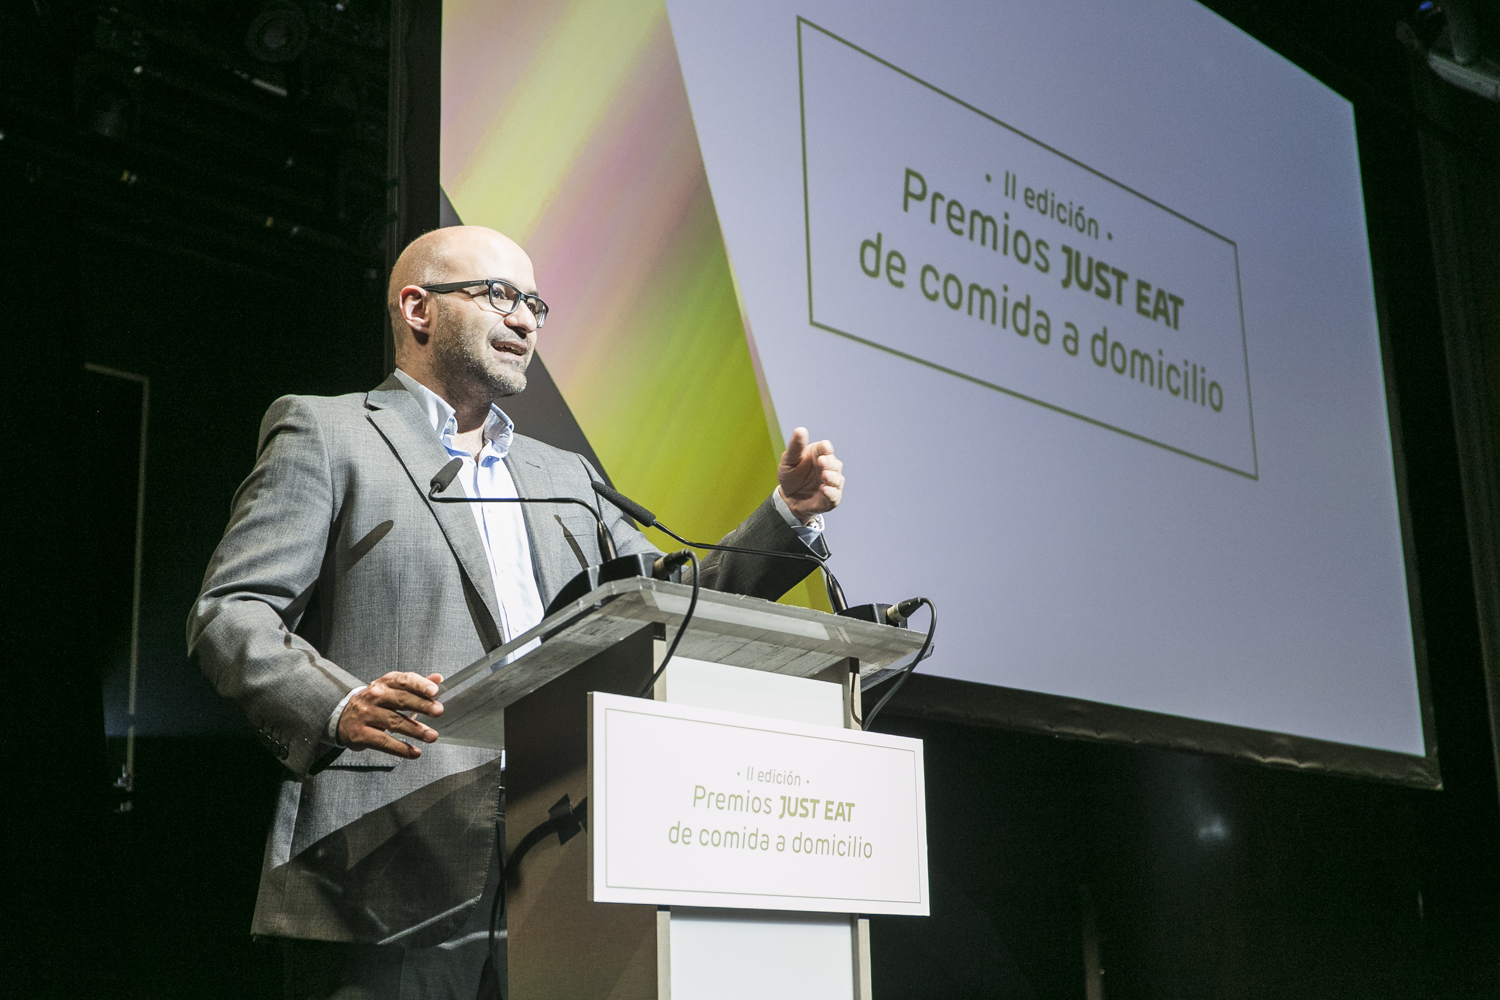 Jesus Rebollo, Country Manager of Just Eat Spain during the awards ceremony